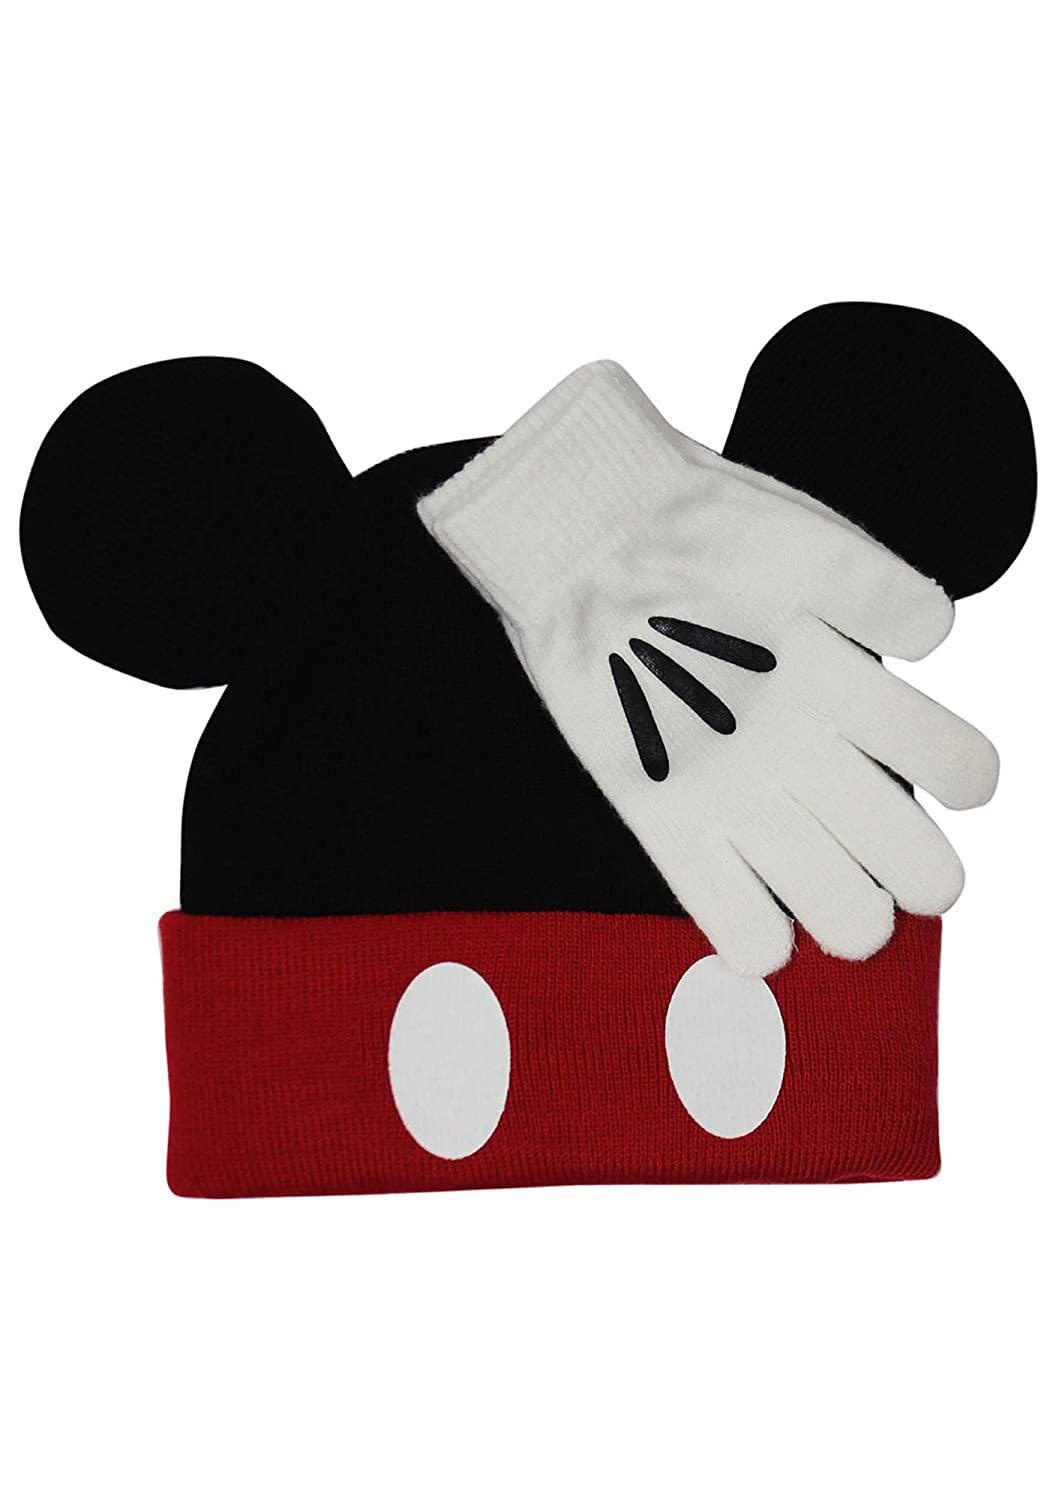 Concept One Accessories Mickey Mouse Knit Cuff Beanie w/Gloves Set Black/red One Size Disney ECCL3381AZ-006